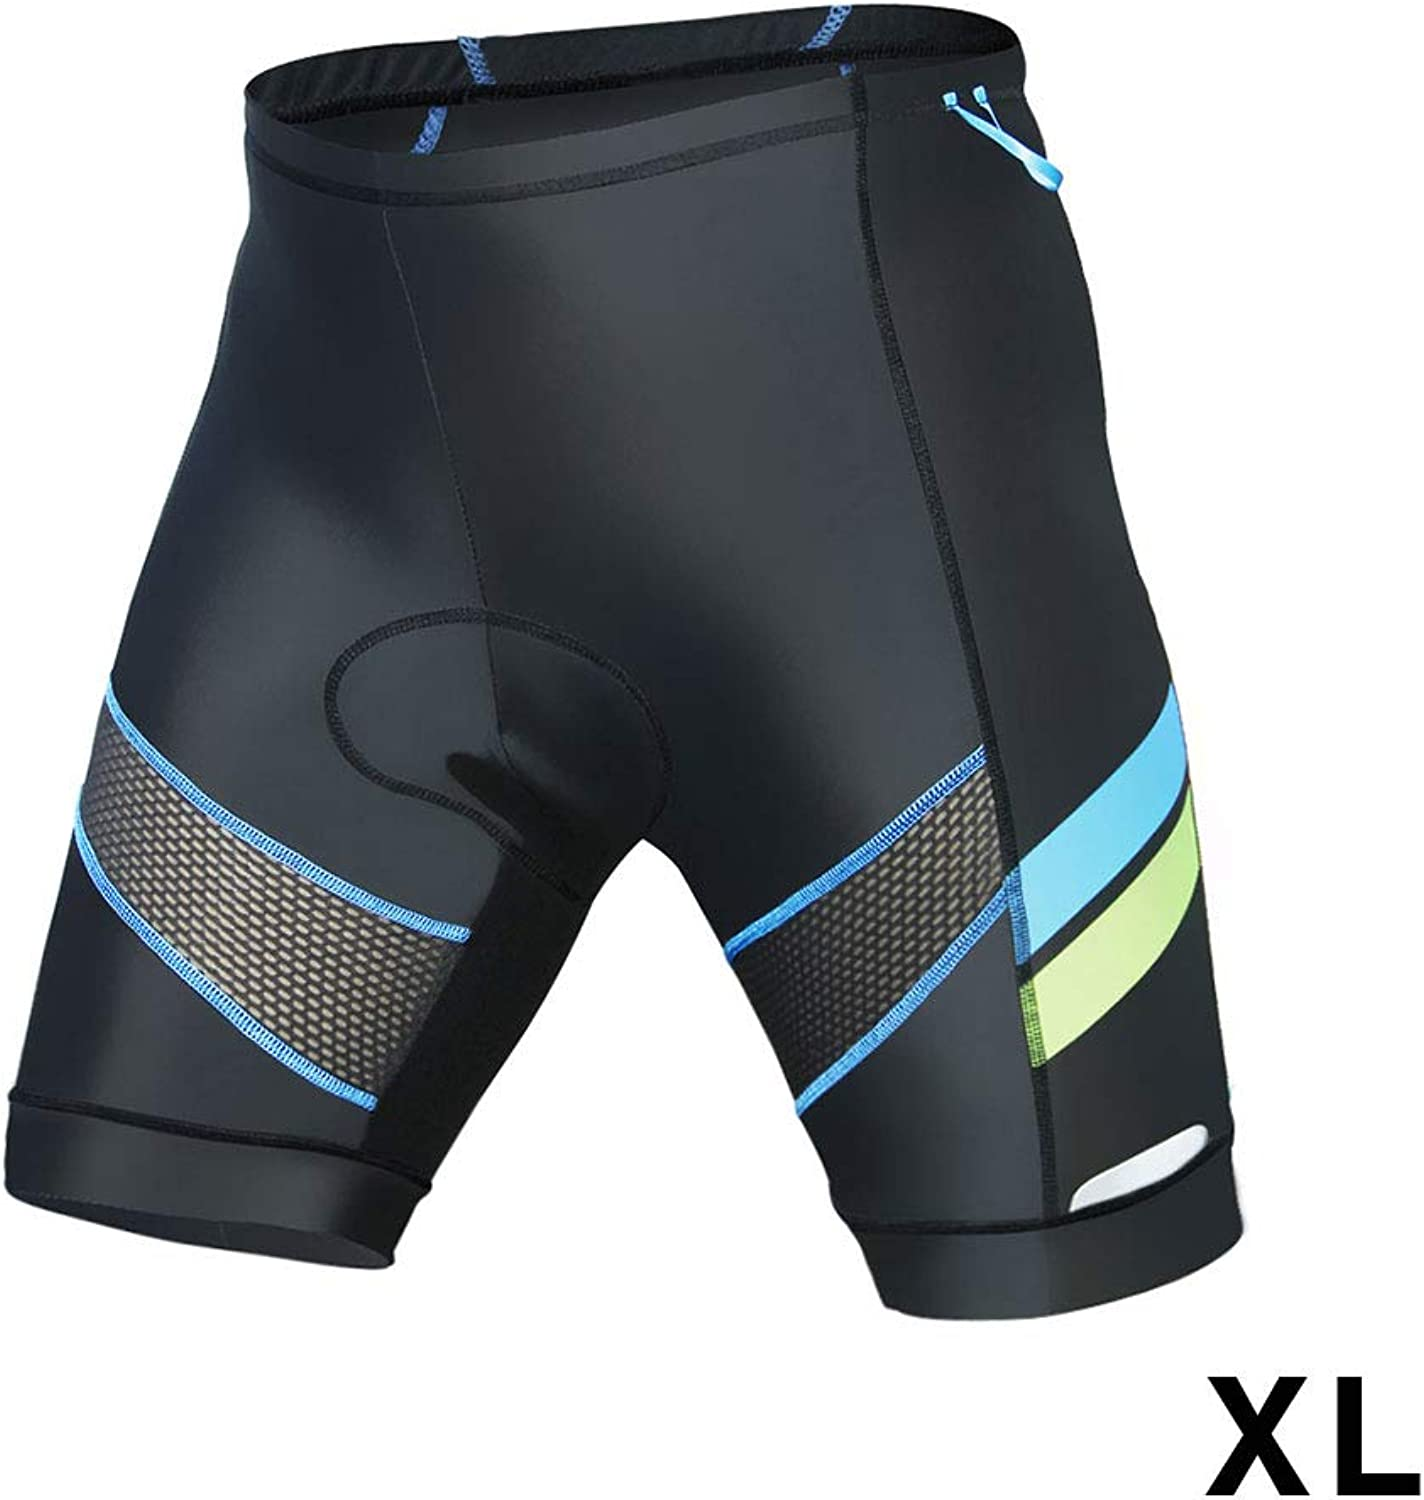 Men's Cycling Shorts  Breathable Mens blueee Strips Bike Shorts Lightweight Biker Pants for Outdoor Biking Riding